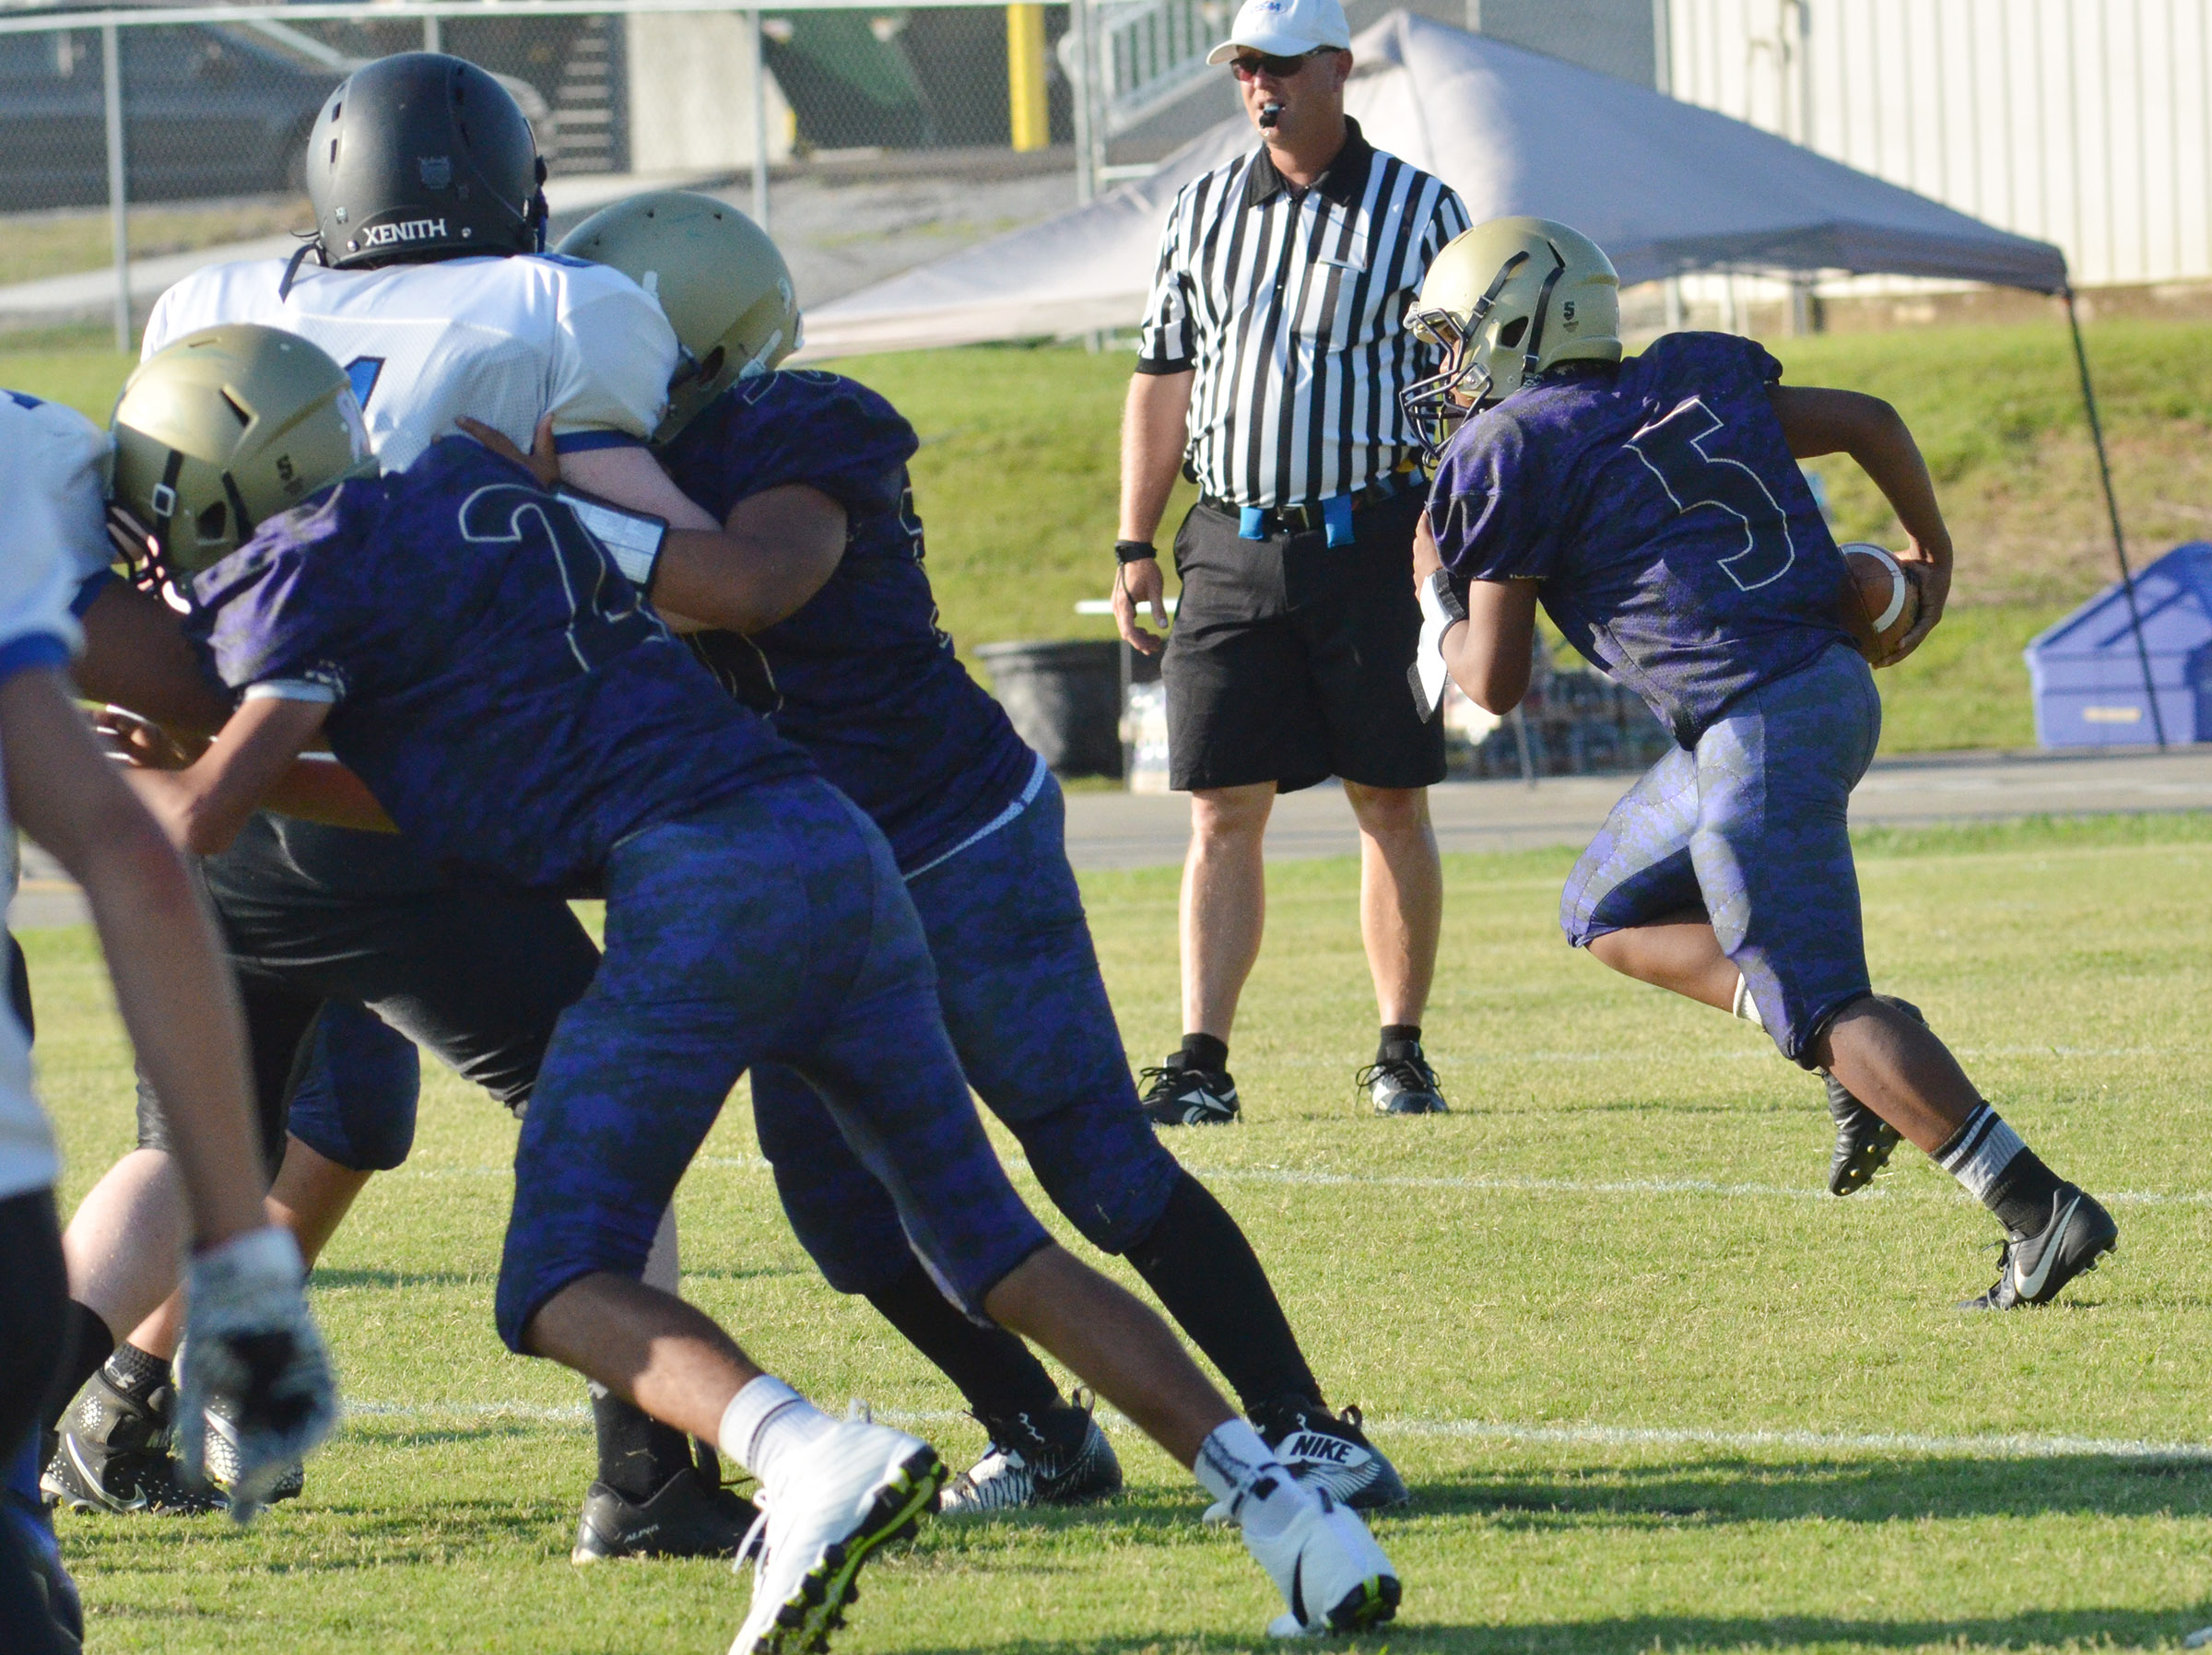 CMS seventh-grader Deondre Weathers runs the ball.